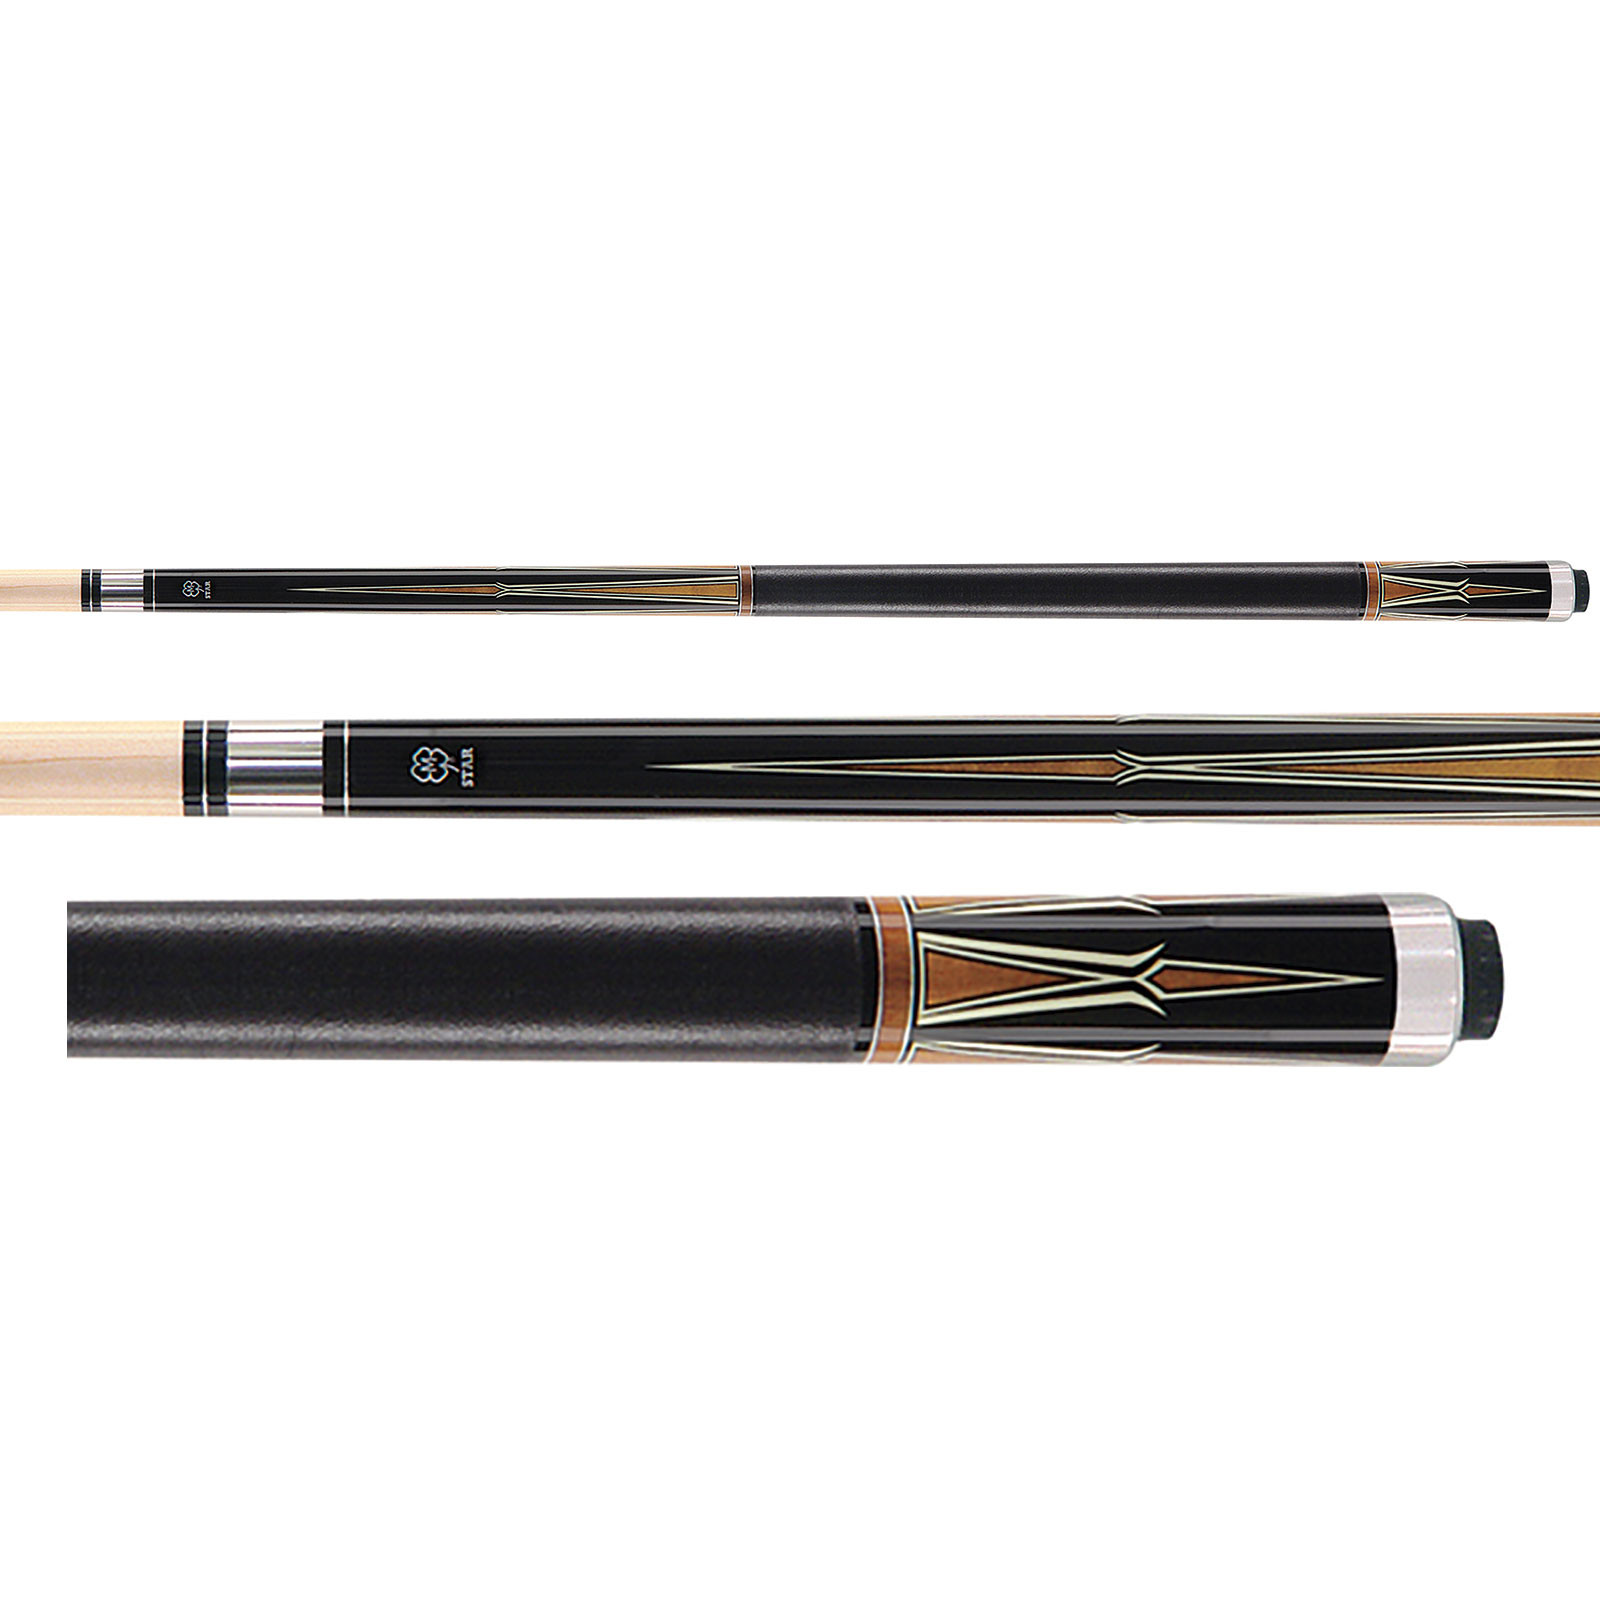 McDermott Star S56 Brown Billiards Pool Cue Stick